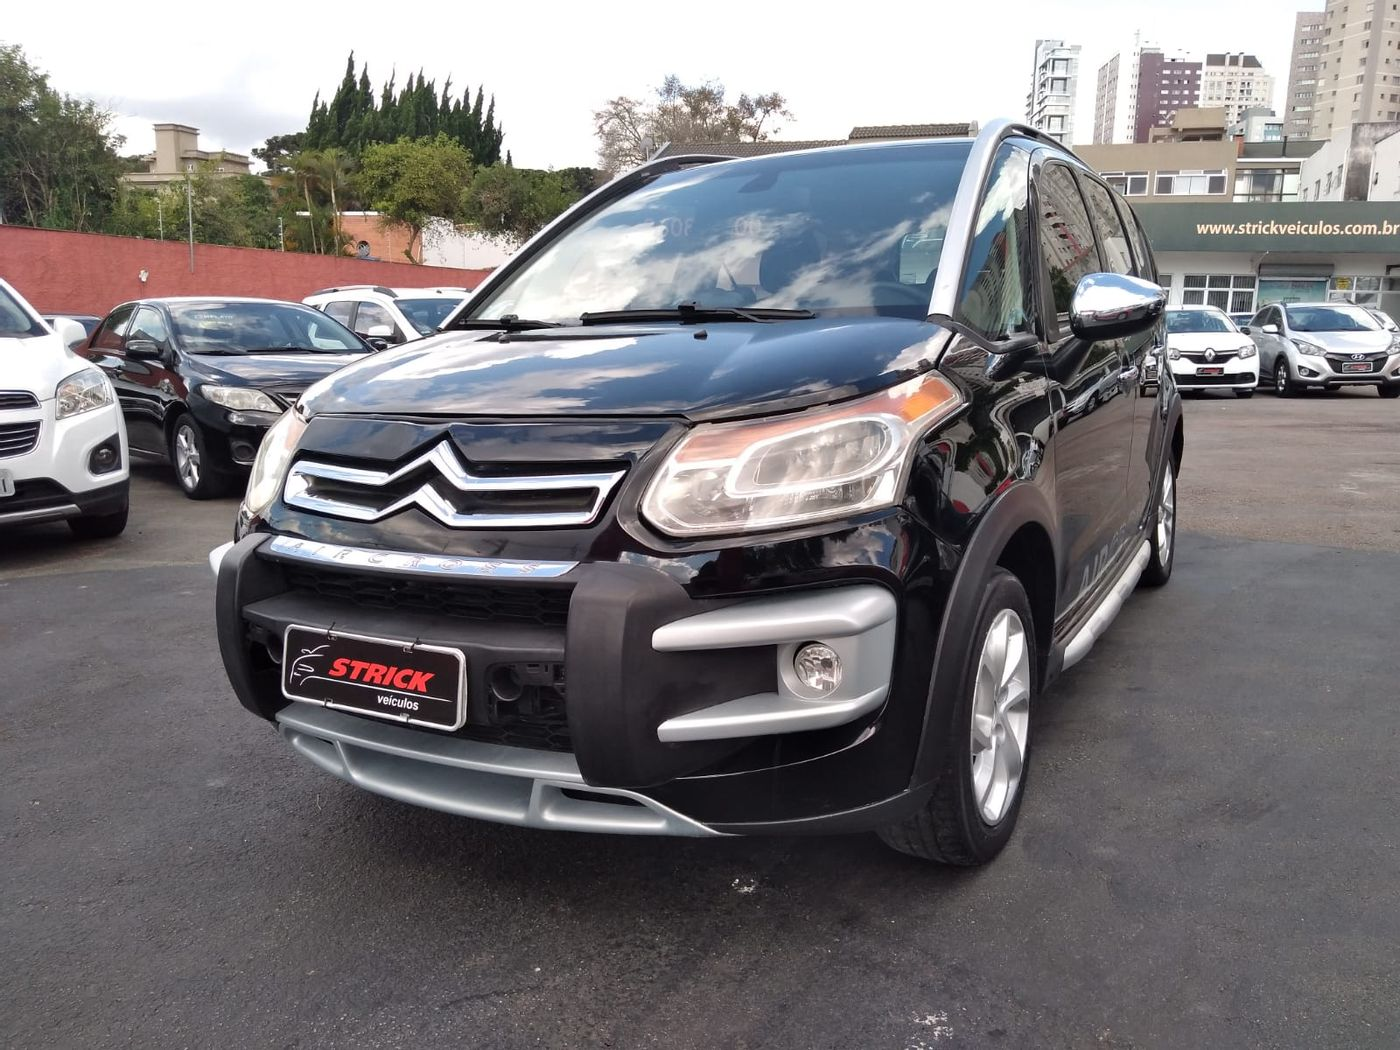 Citroën AIRCROSS Exclusive 1.6 Flex 16V 5p Aut.